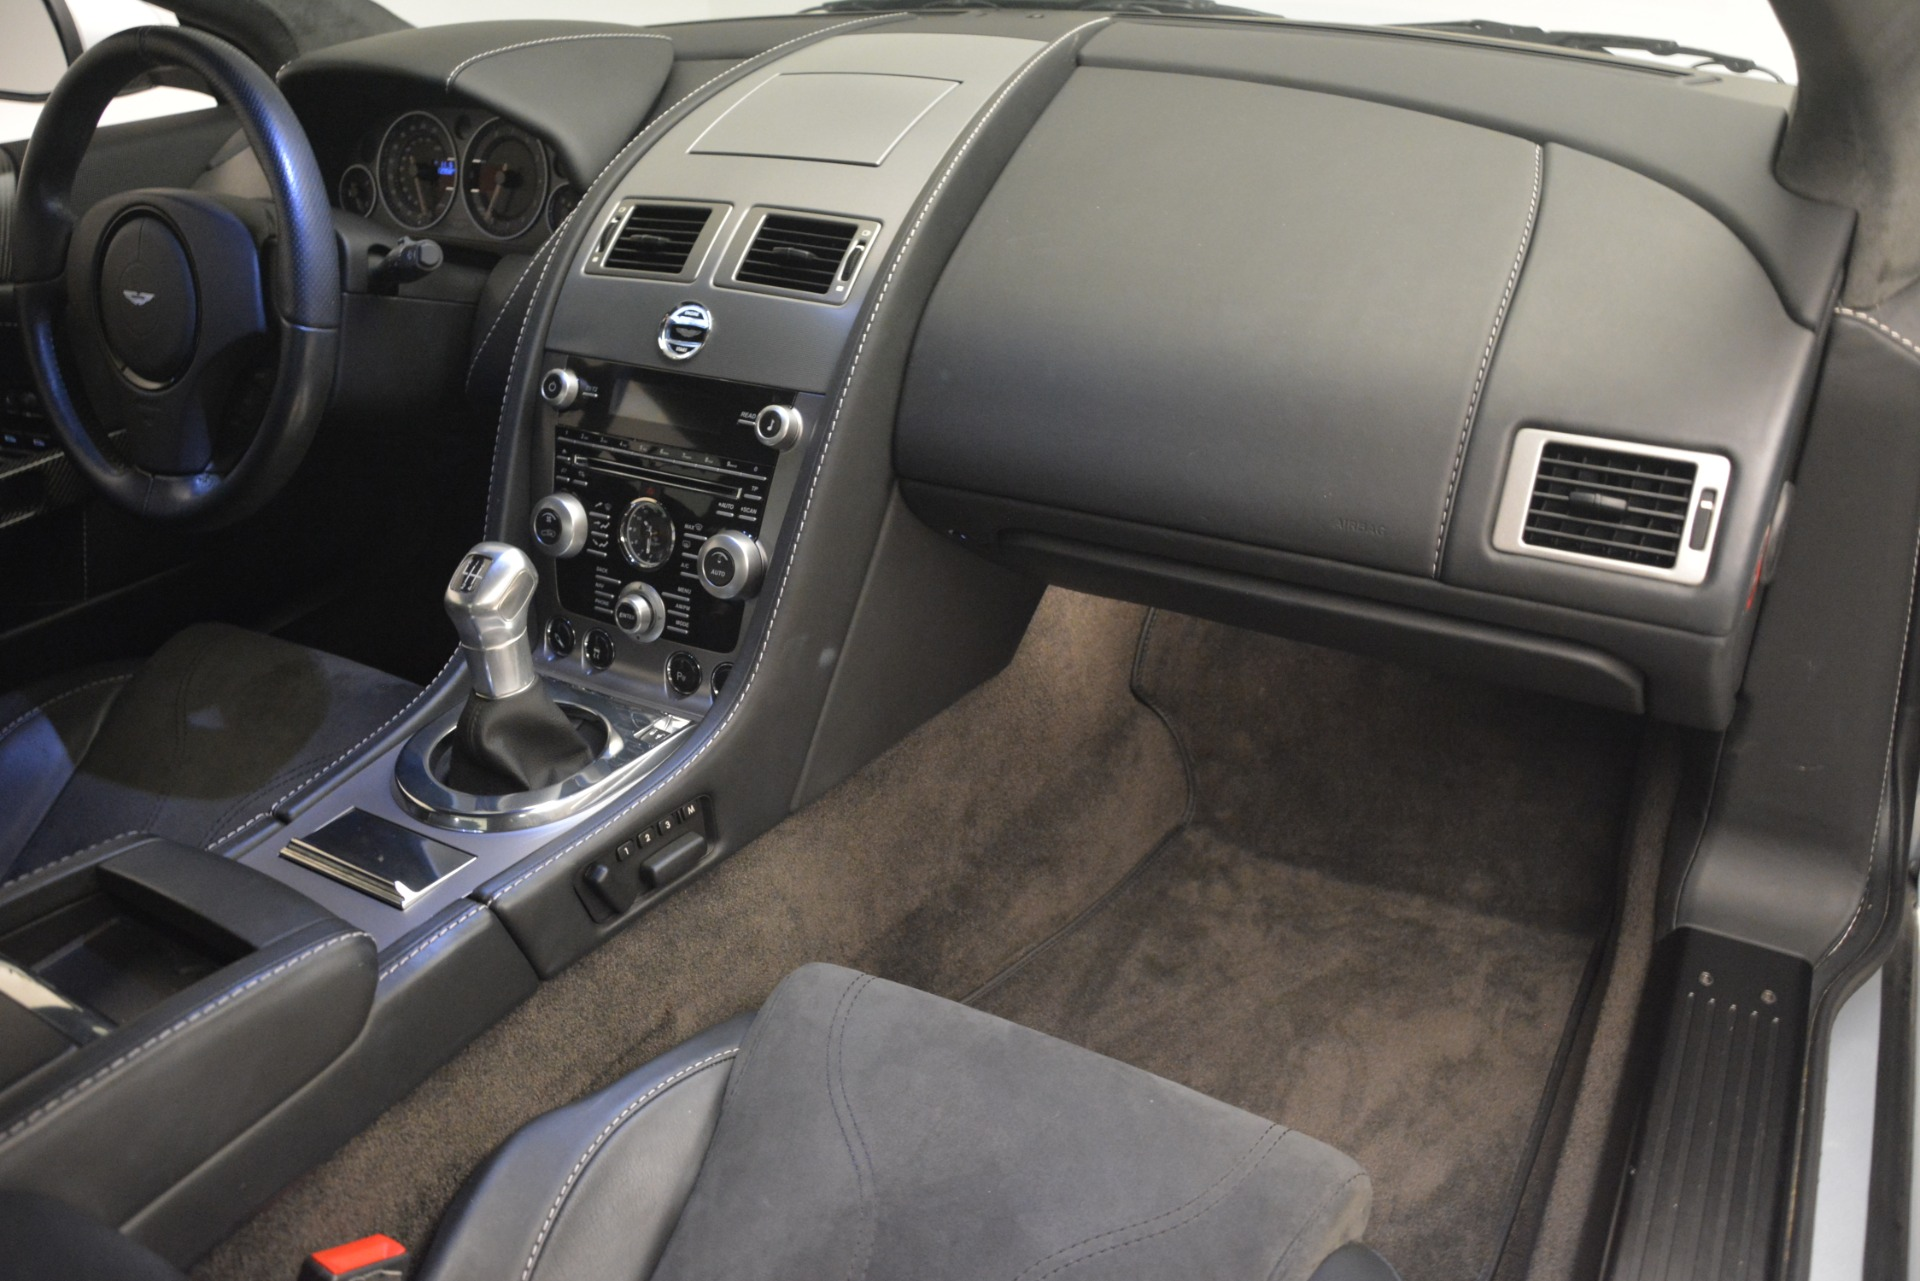 Used 2009 Aston Martin DBS Coupe For Sale In Westport, CT 3033_p23